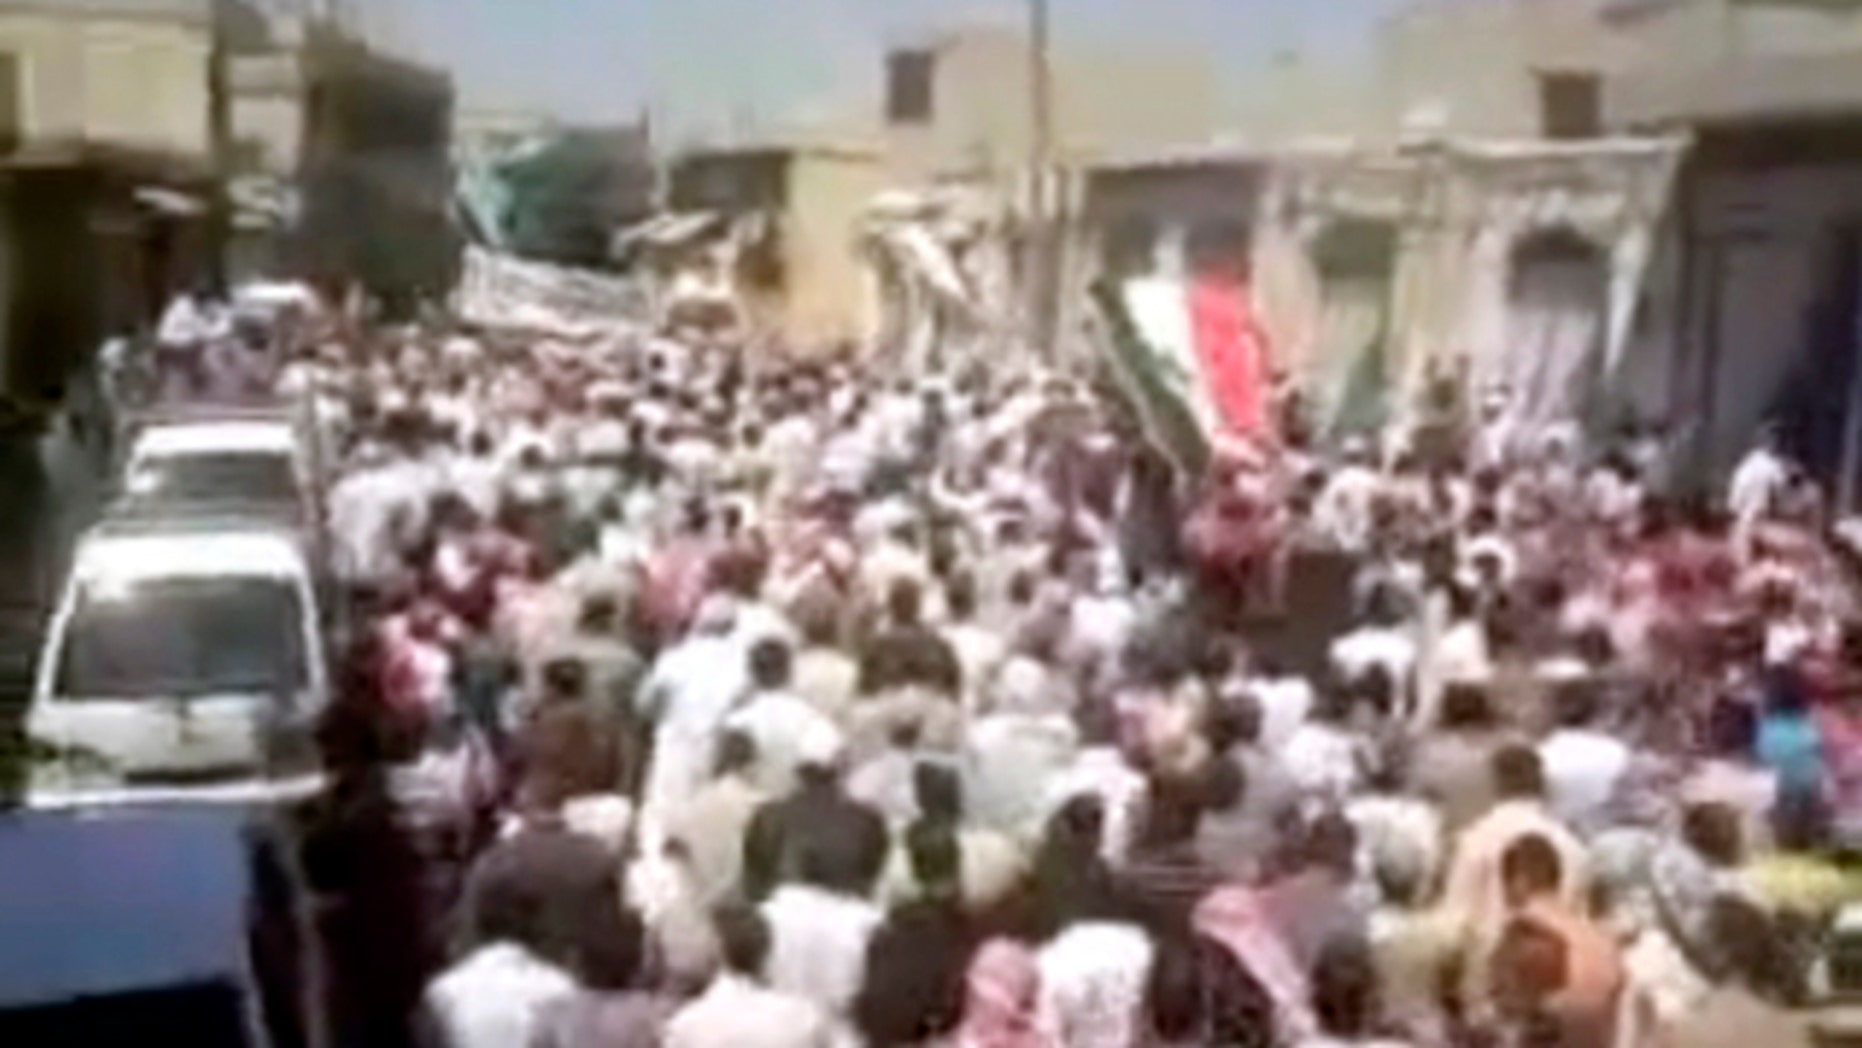 Aug. 5: In this image posted on the Internet by Shaam News Network, showing what they purport to be a demonstration in the streets of the city of Homs, Syria.